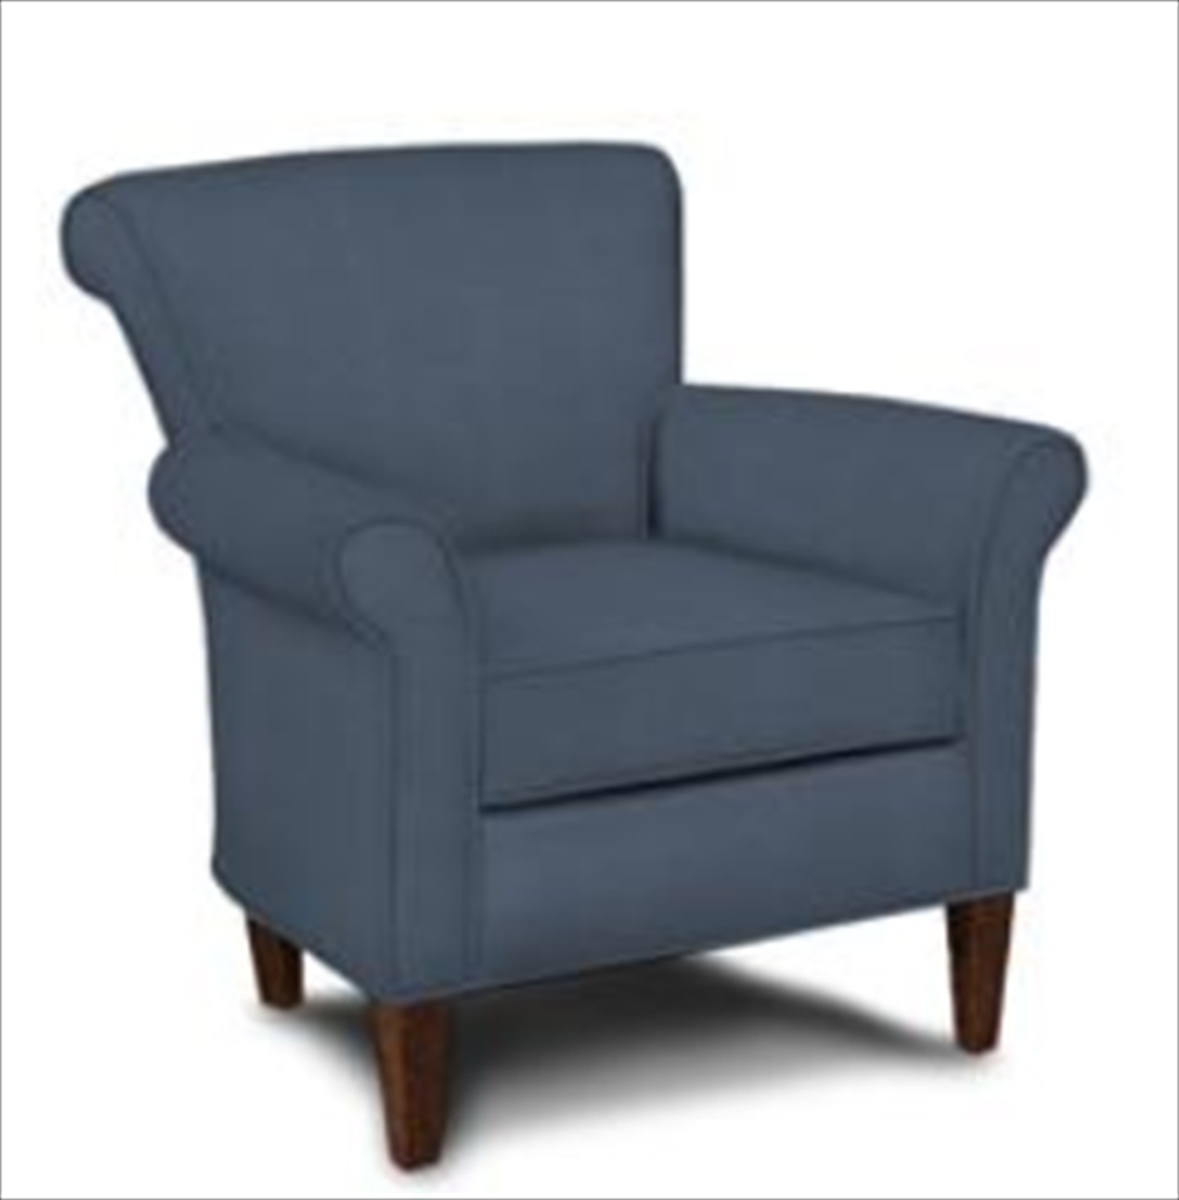 Klaussner Louise Chair - Willow Bluestone